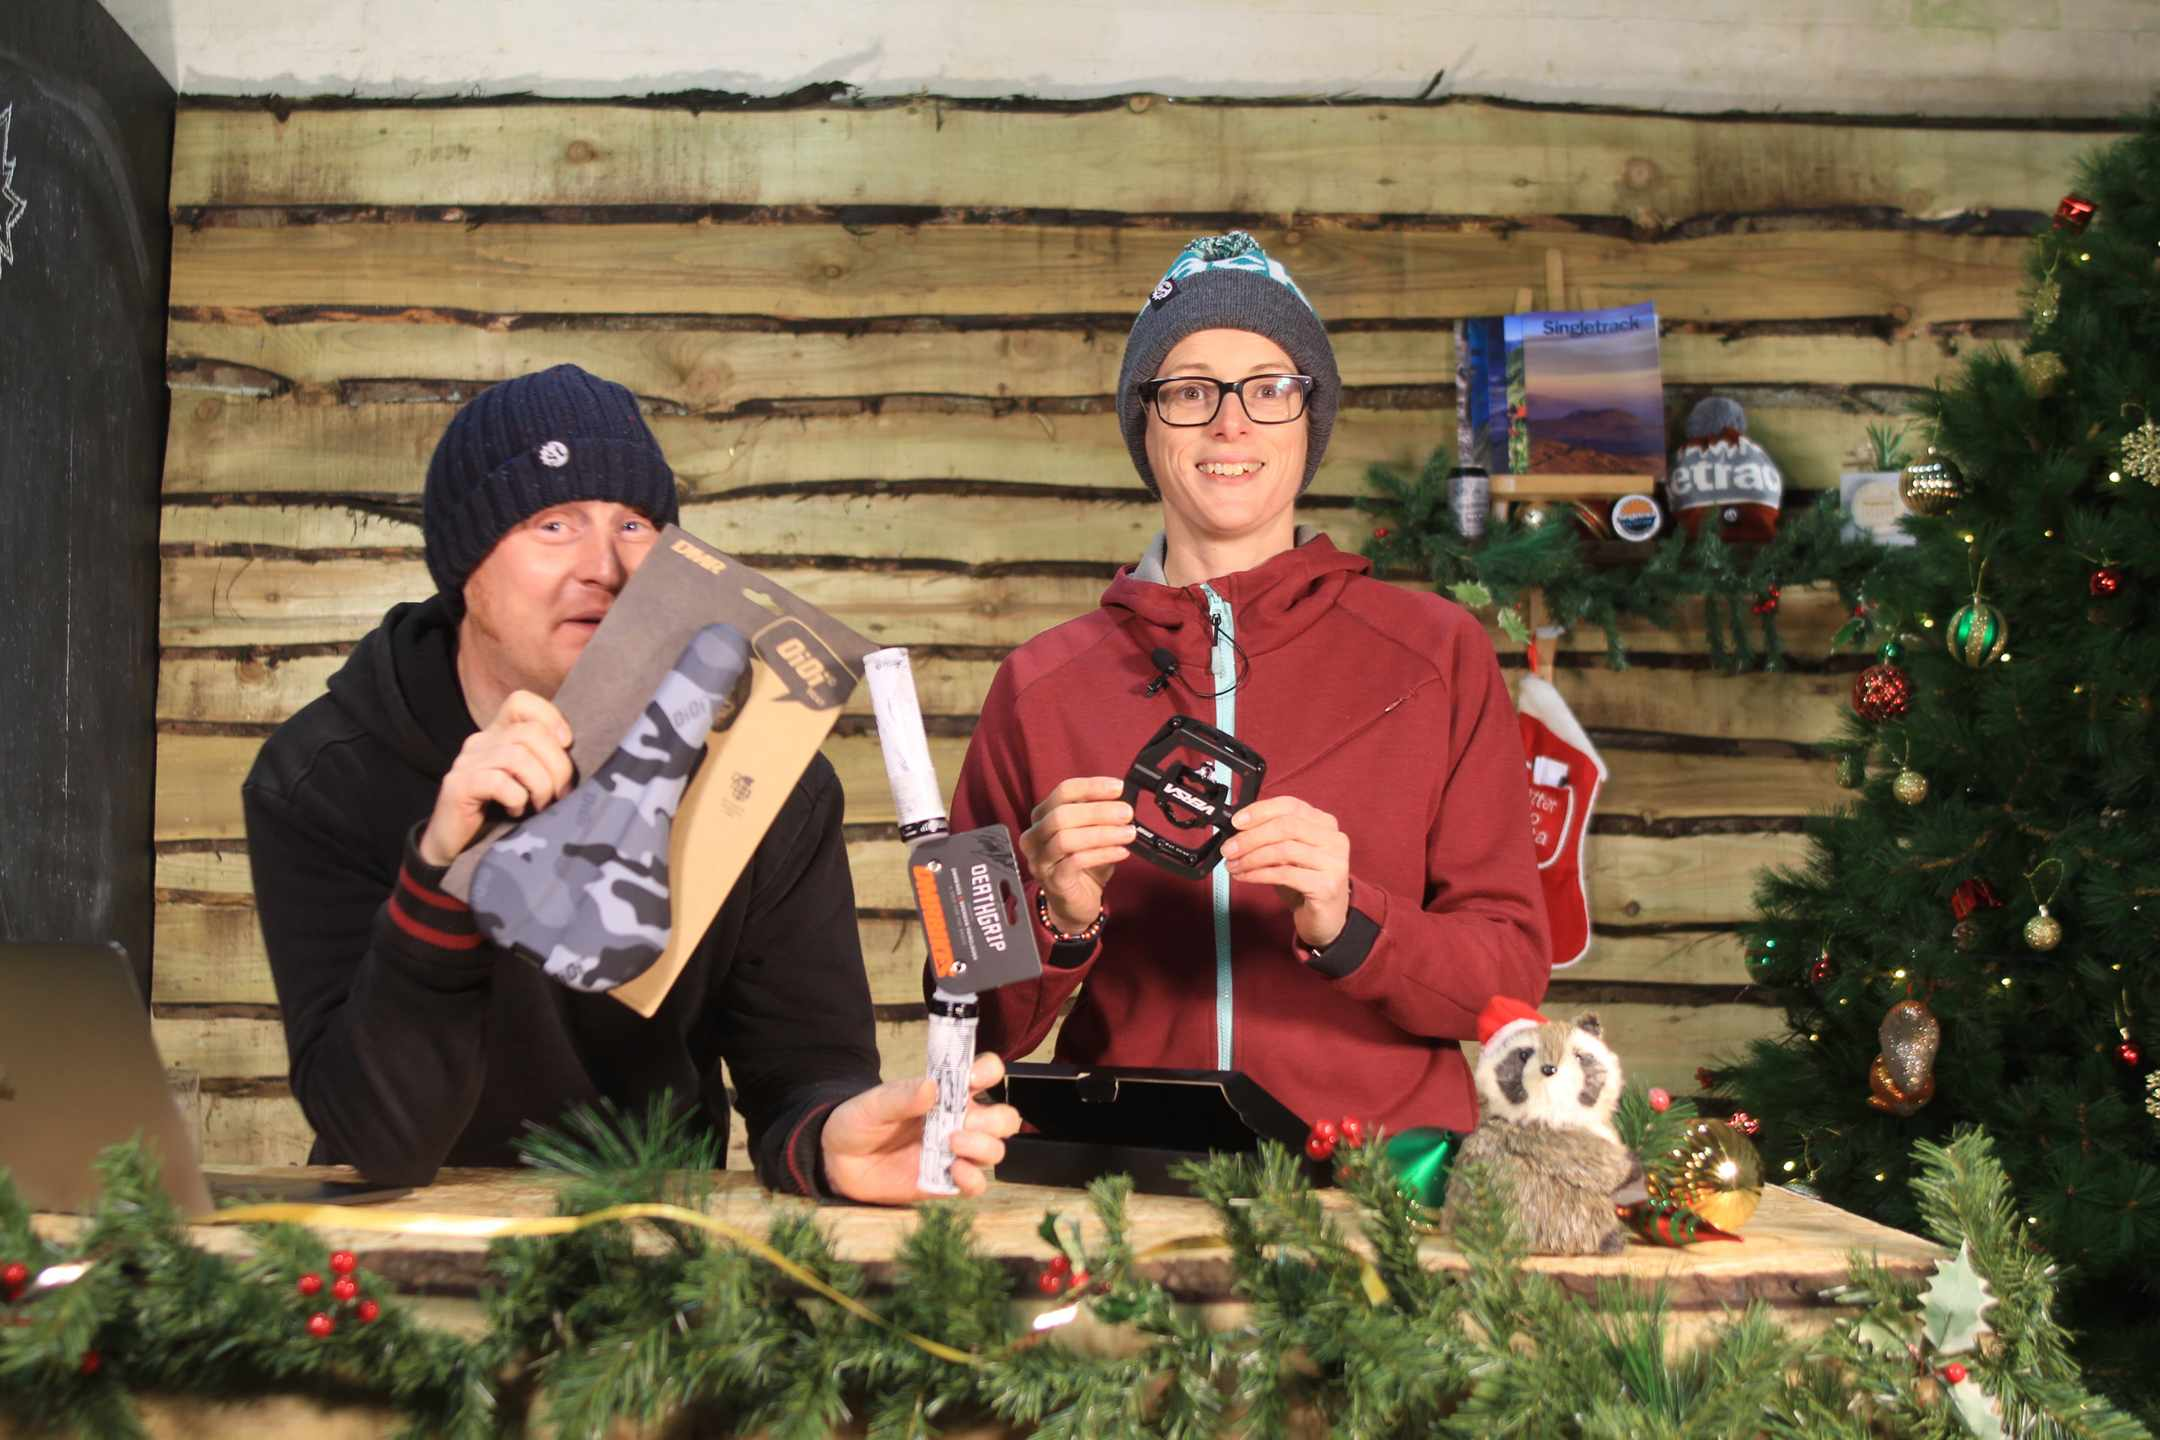 win dmr prizes in the christmas countdown